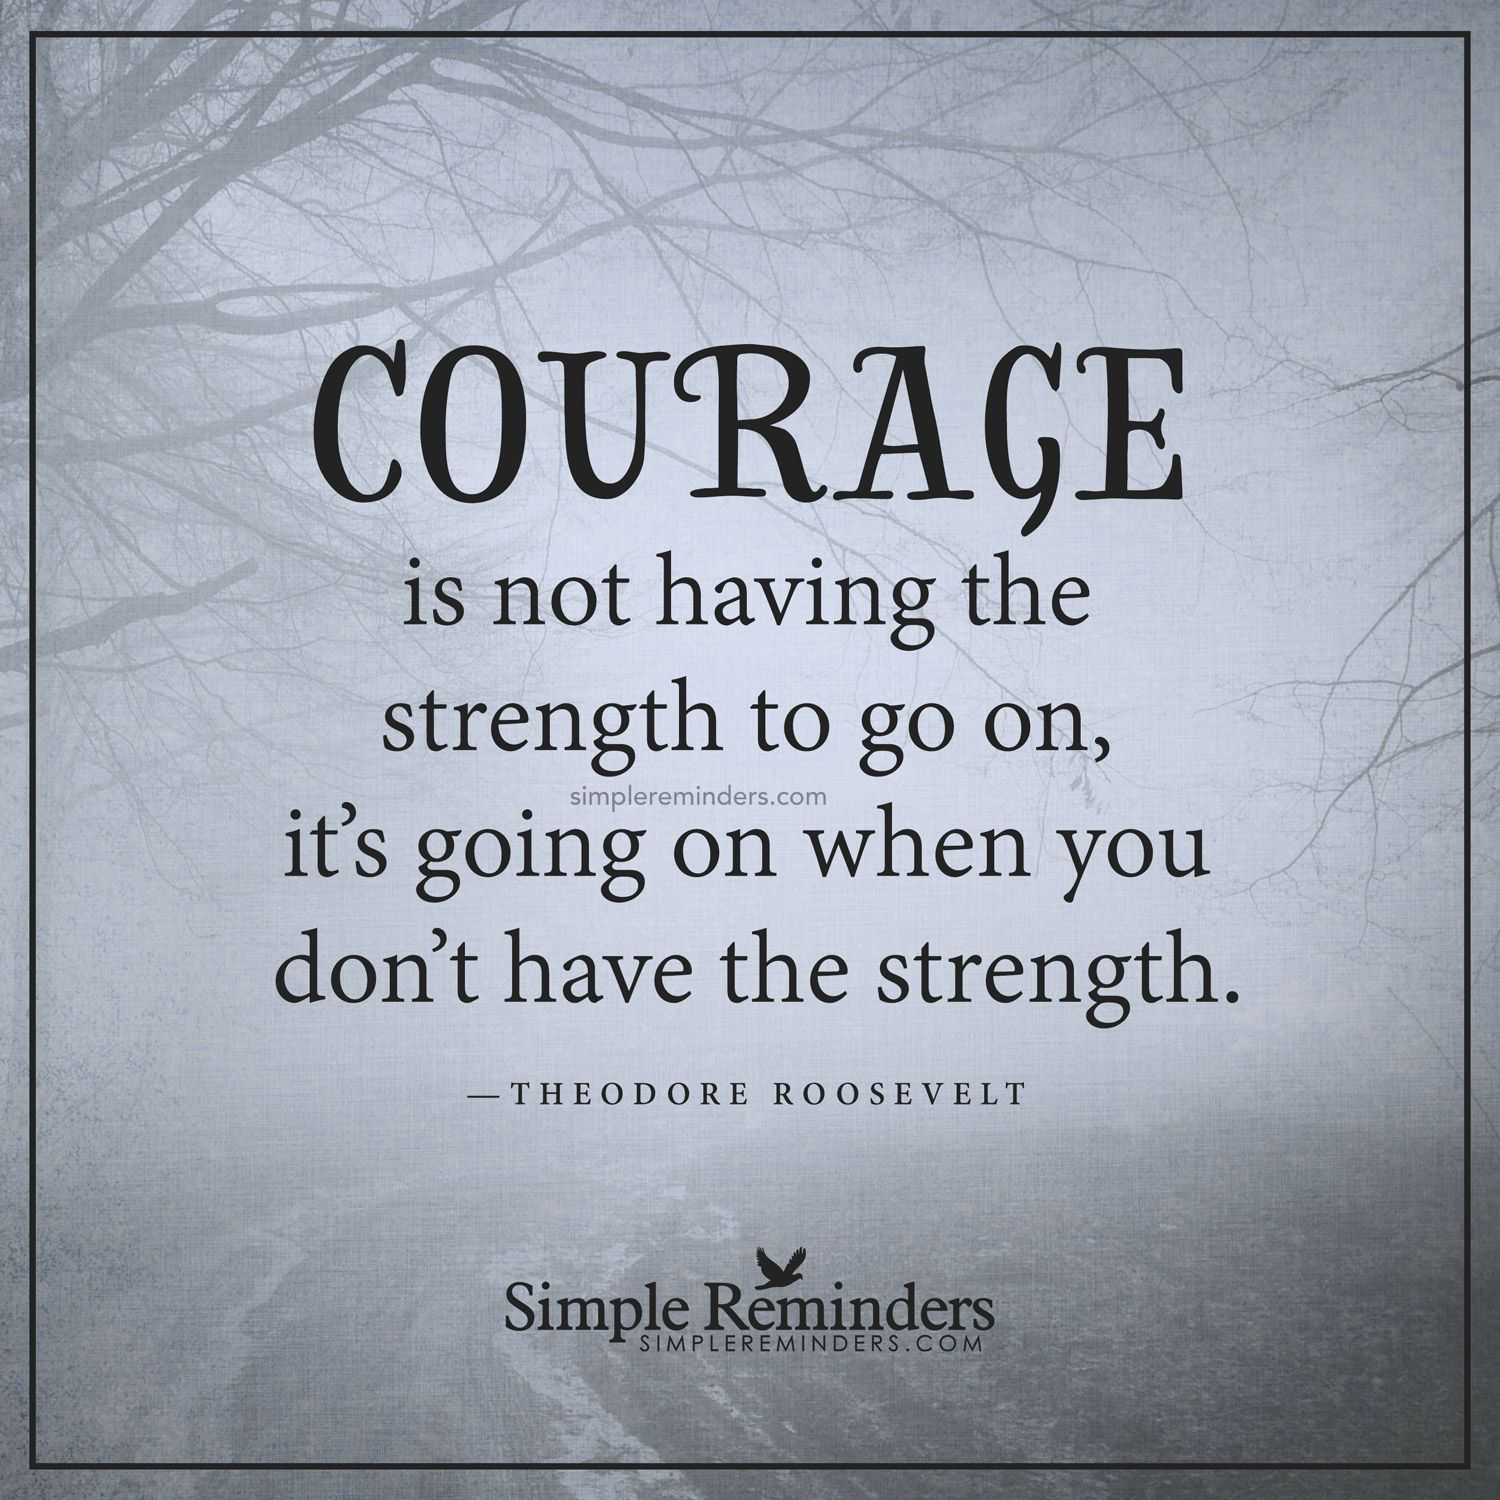 Famous Marine Corps Quotes Real Courage Courage Is Not Having The Strength To Go On It's